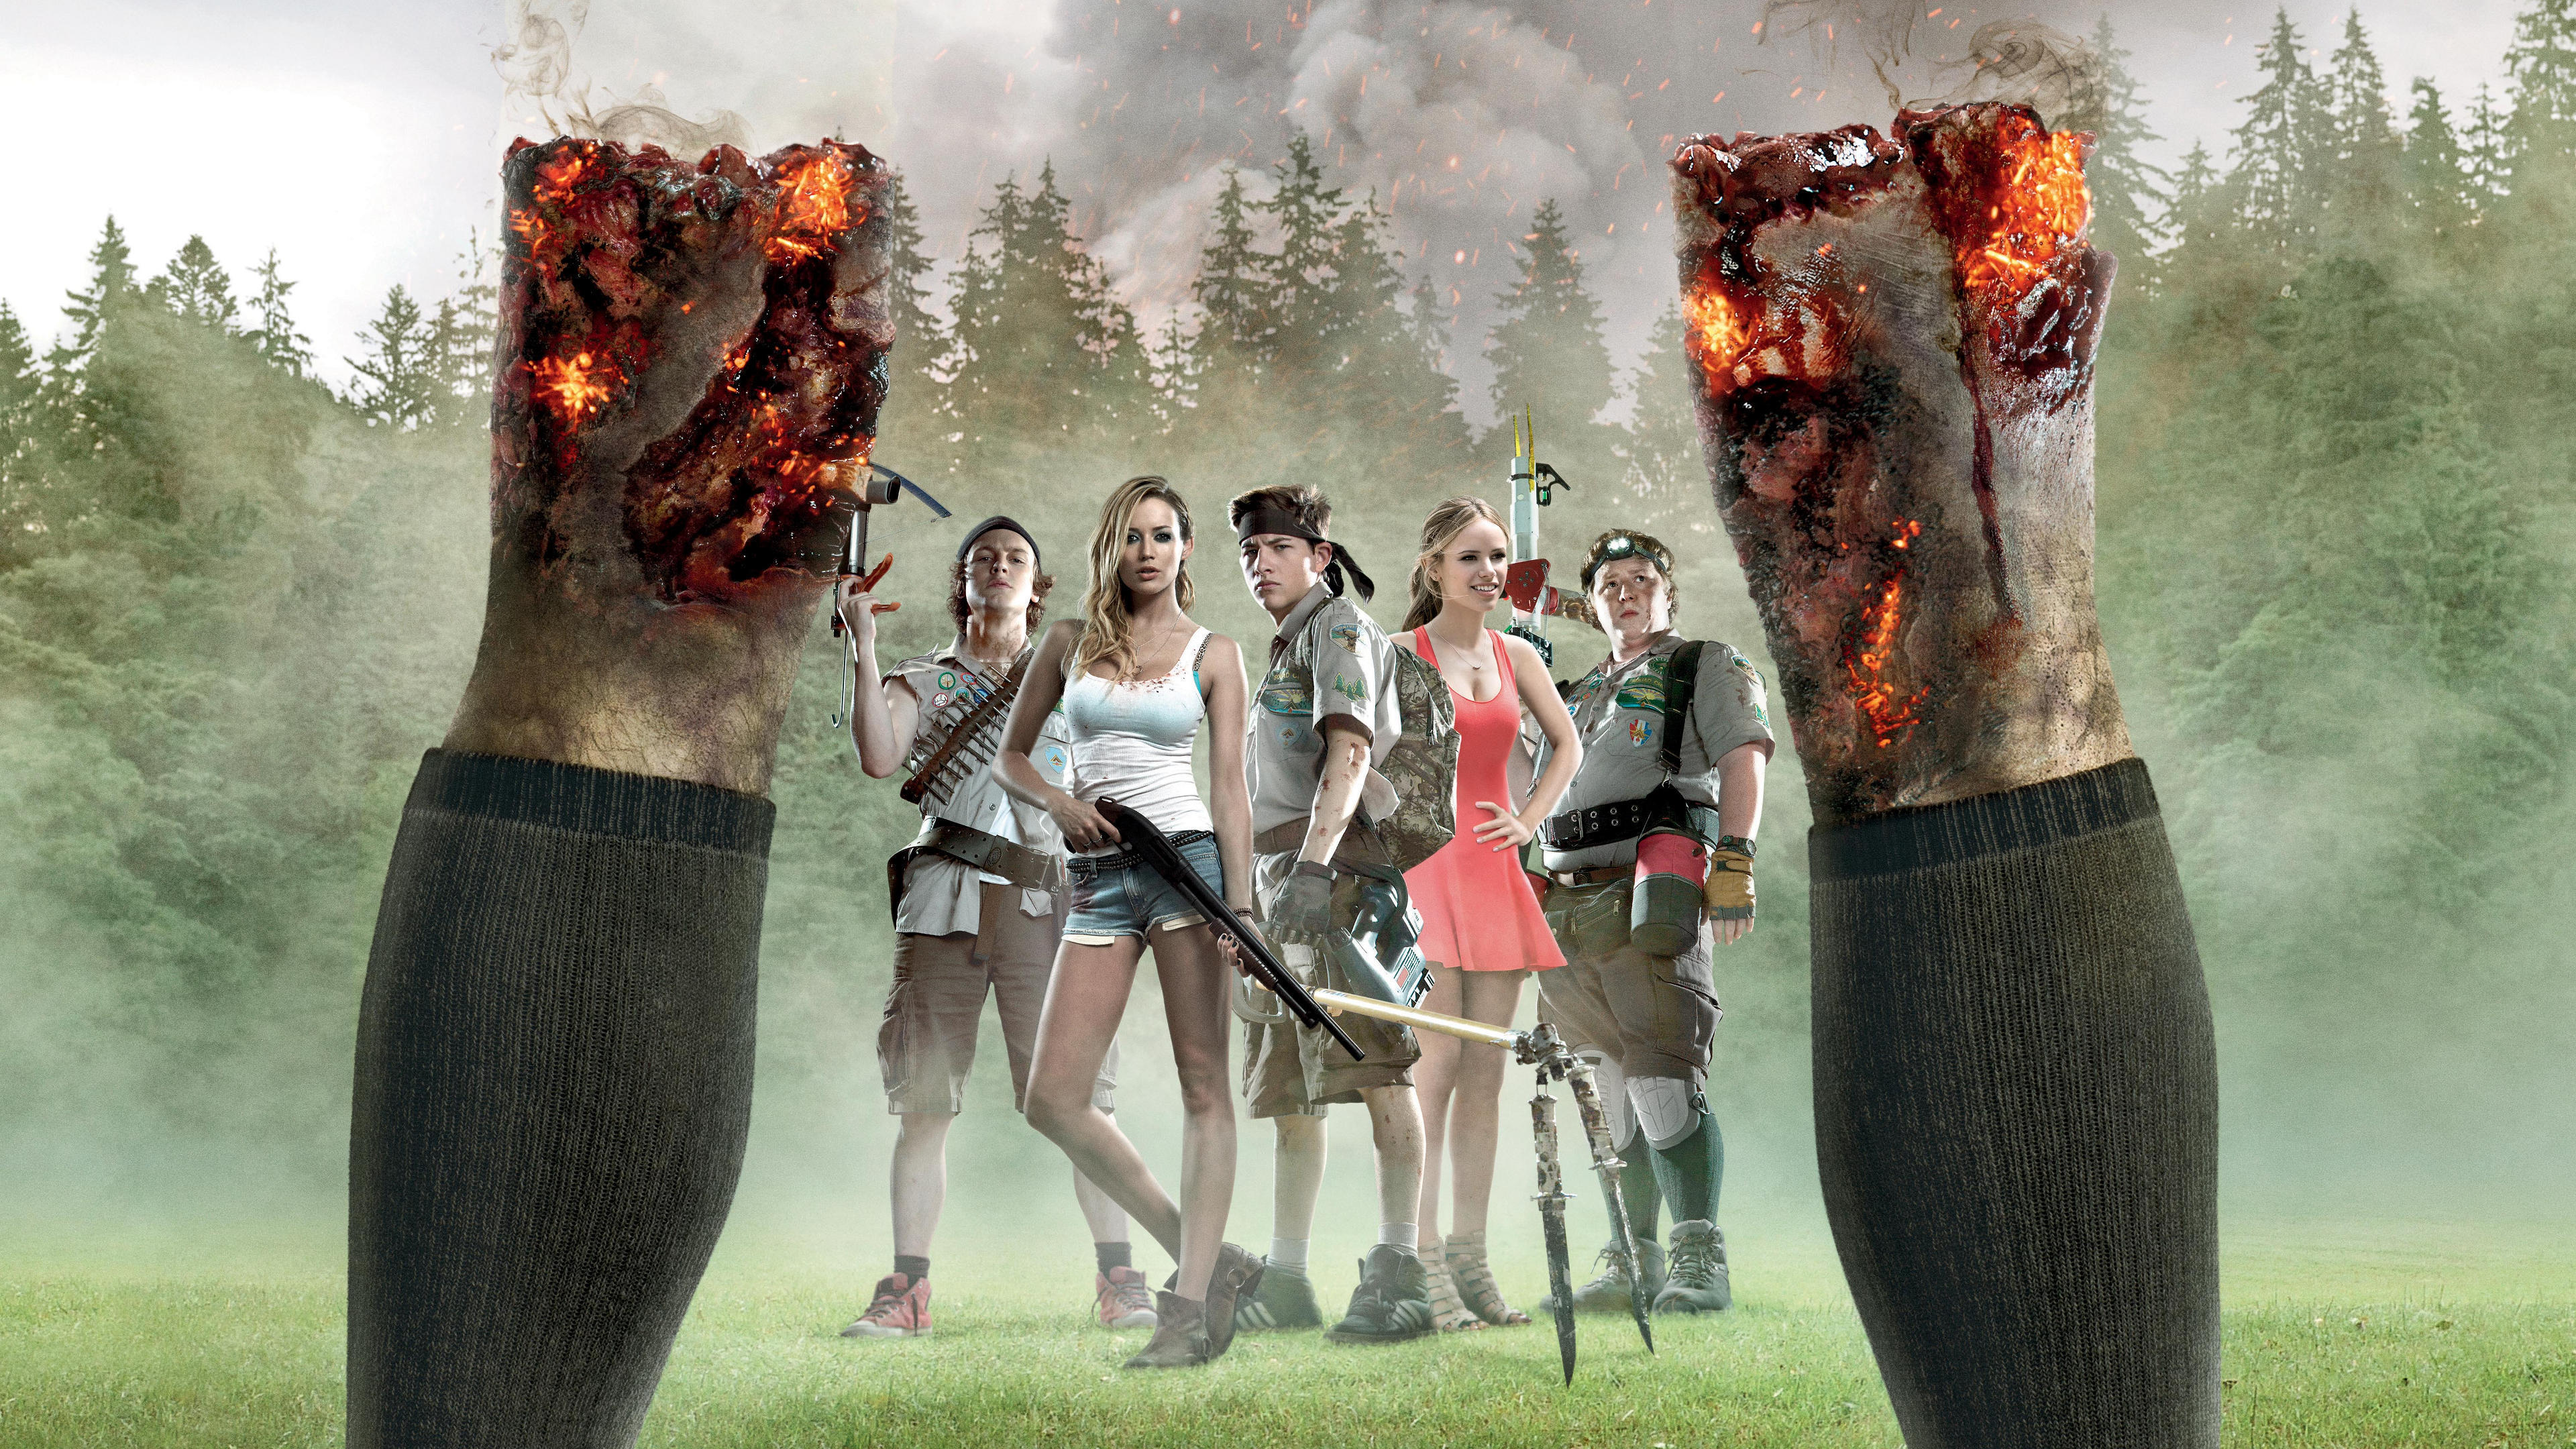 scouts guide to the zombie apocalypse 4k ultra hd